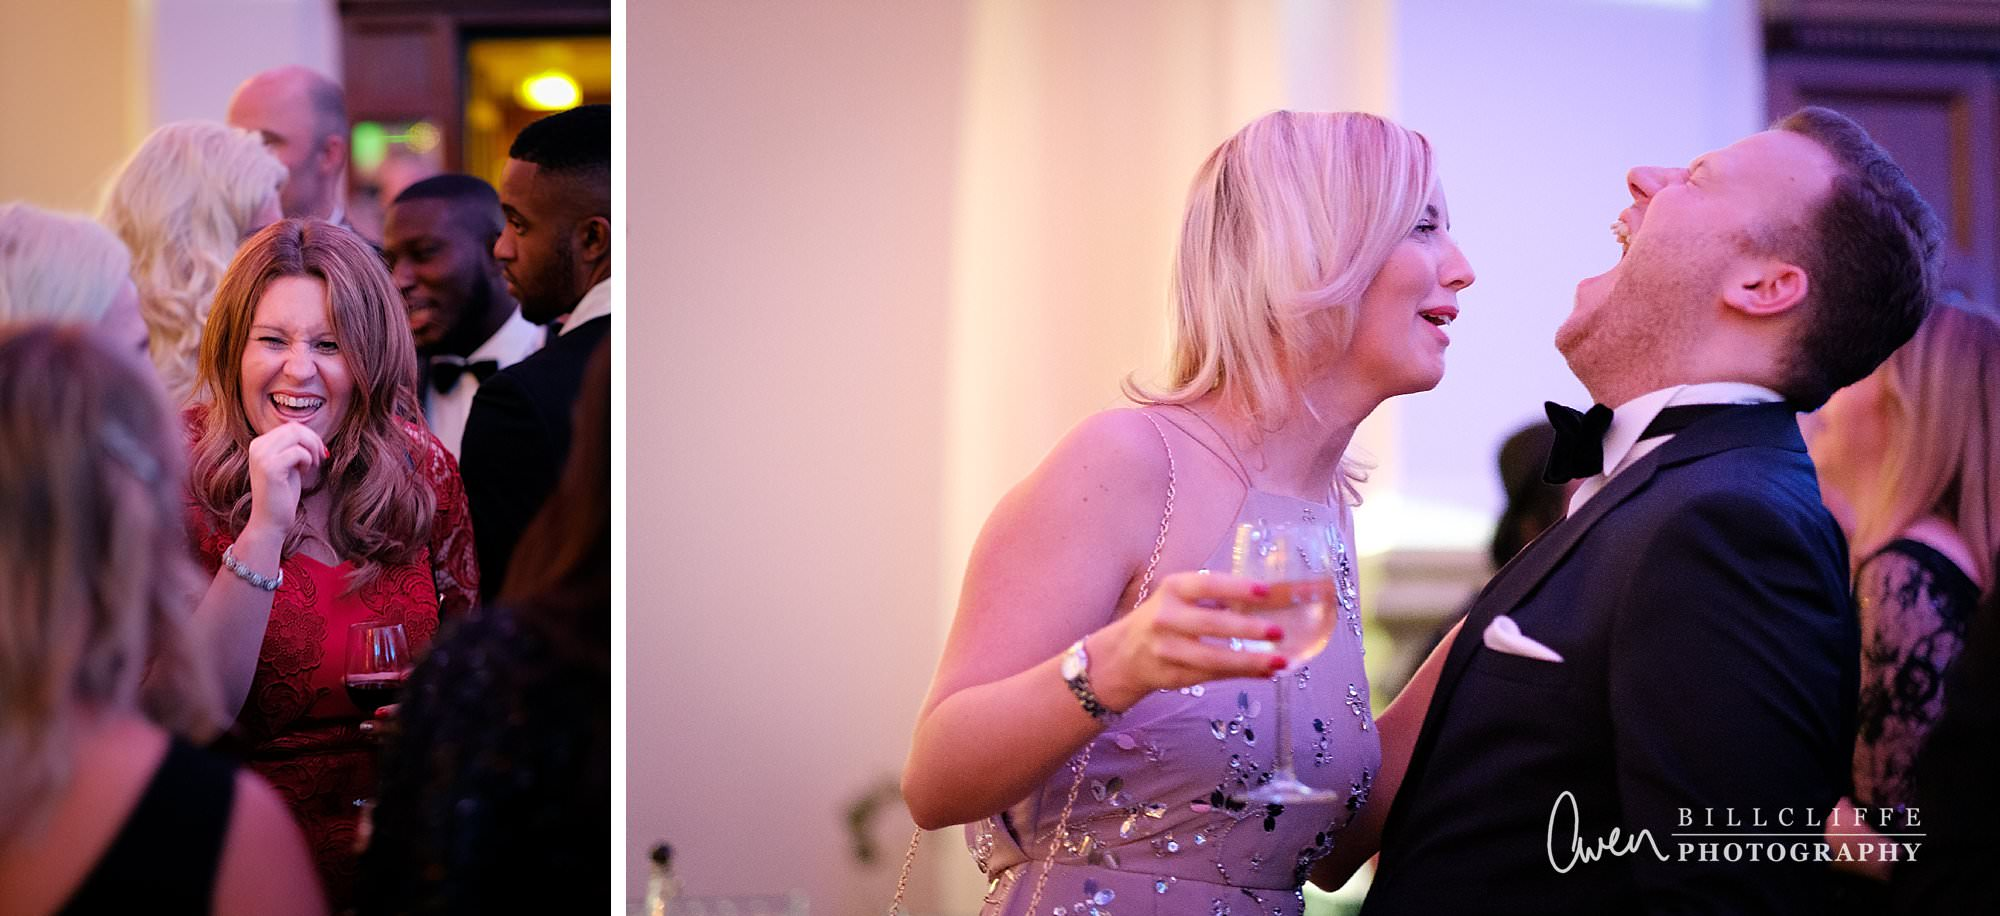 london event photographer 8 northumberland avenue mh 015 - A Christmas Party at 8 Northumberland